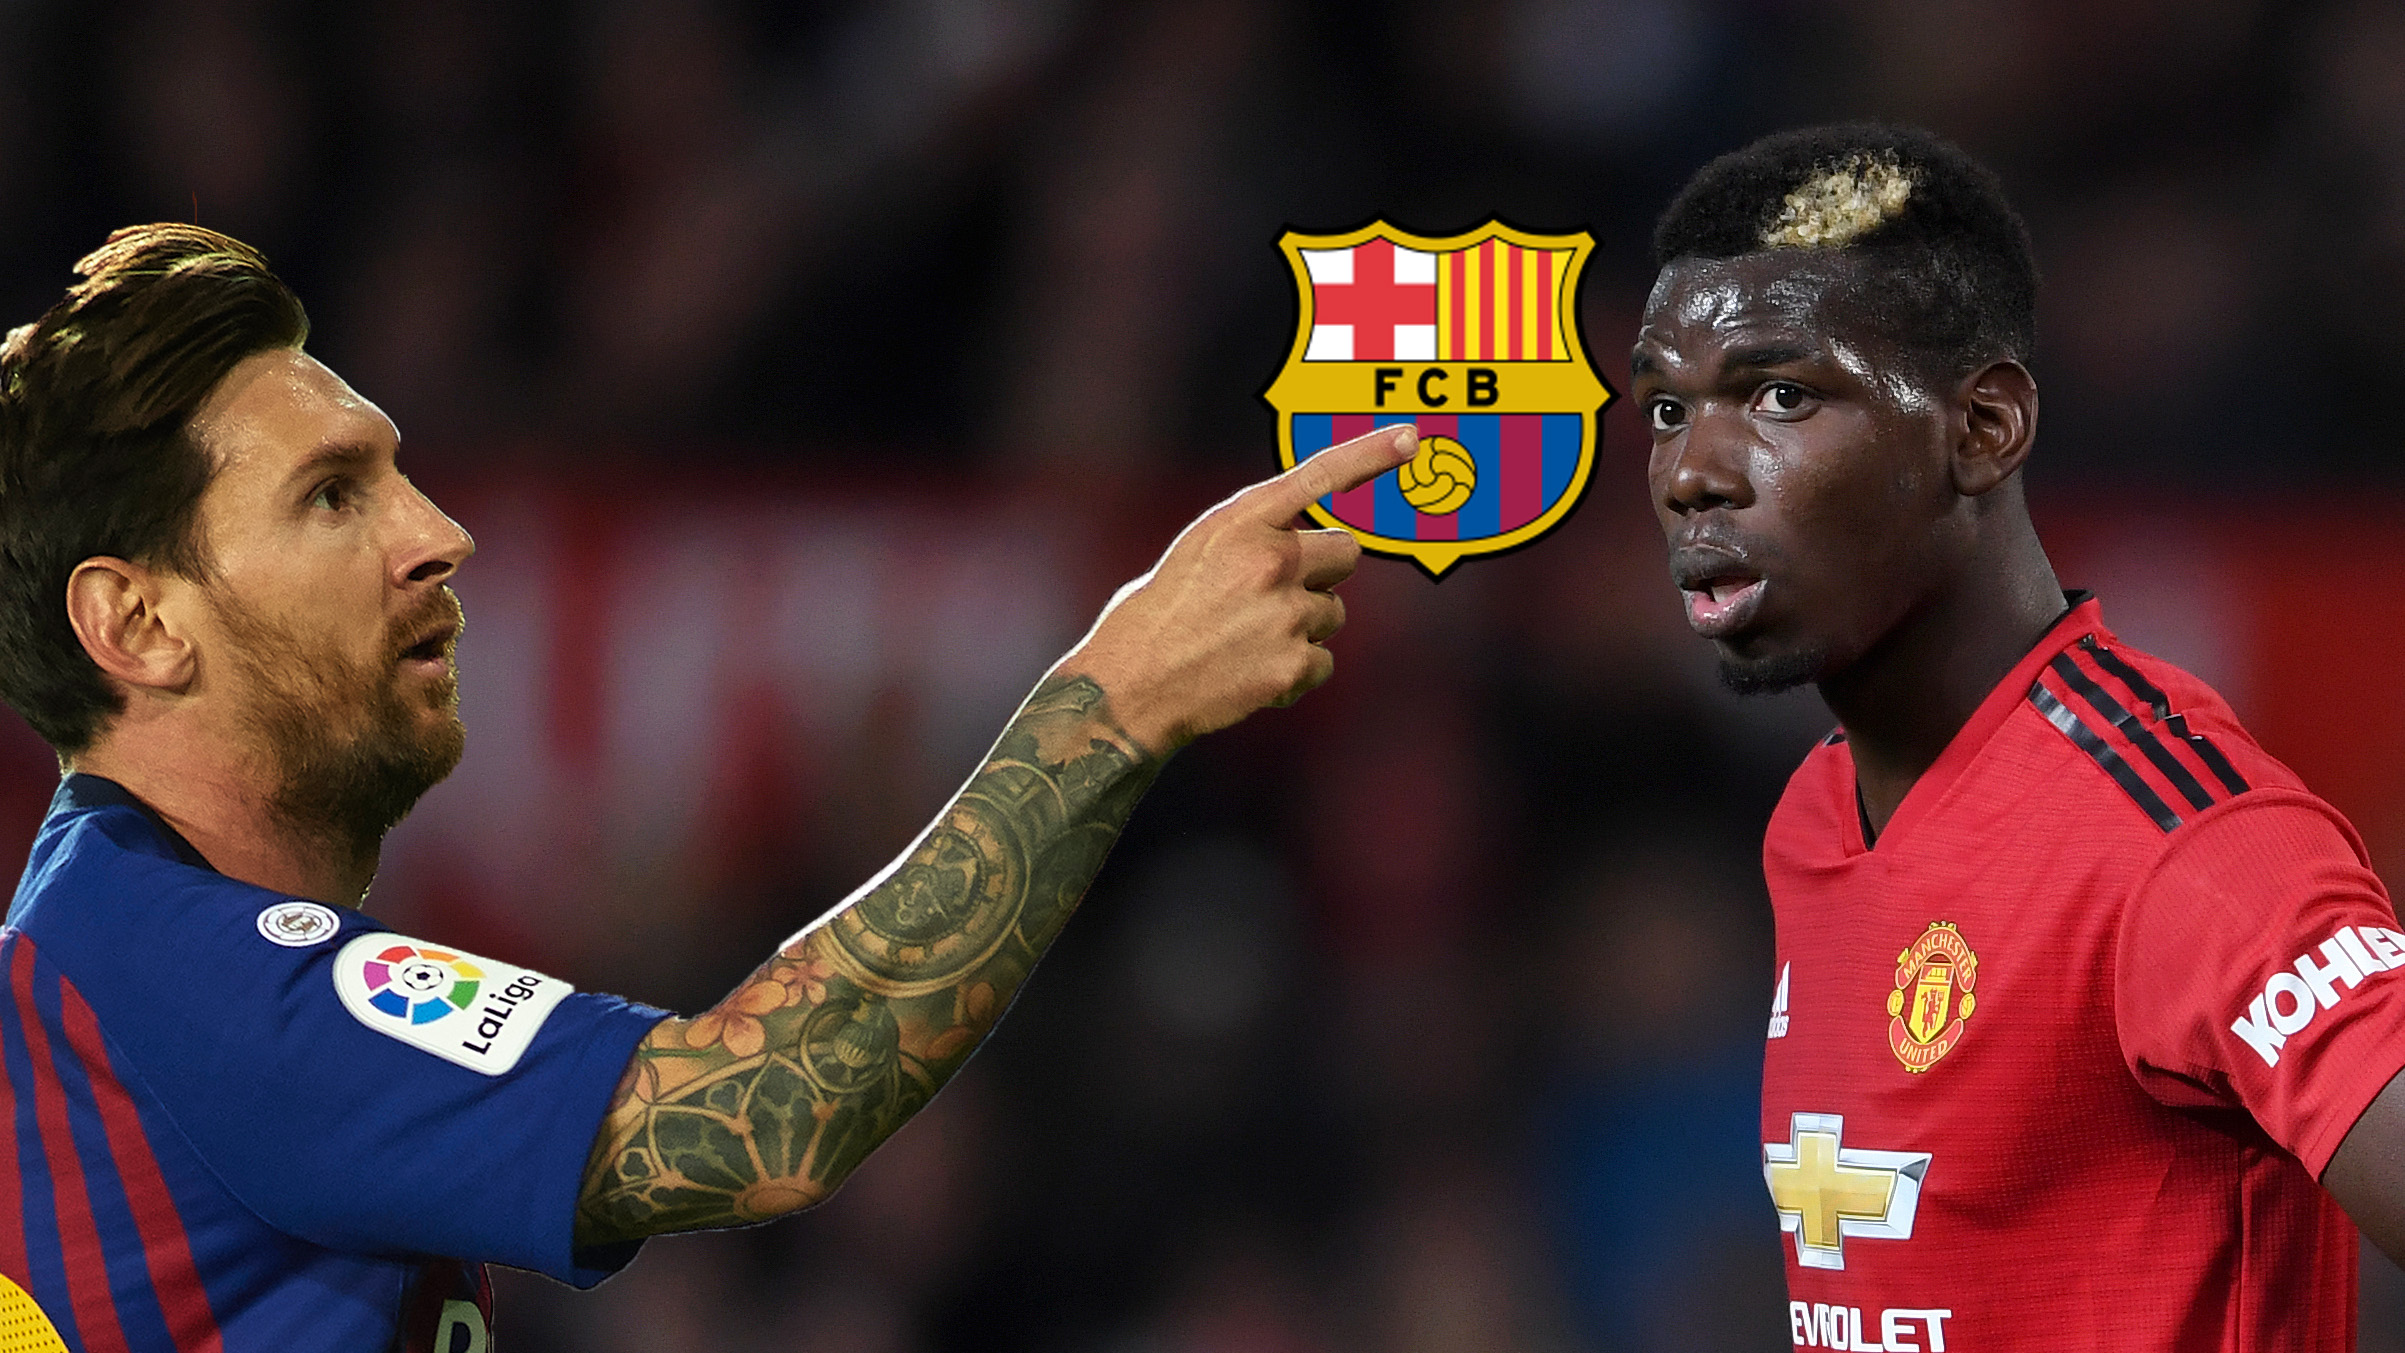 Barça dressing room asks for Manchester United's Pogba to join them